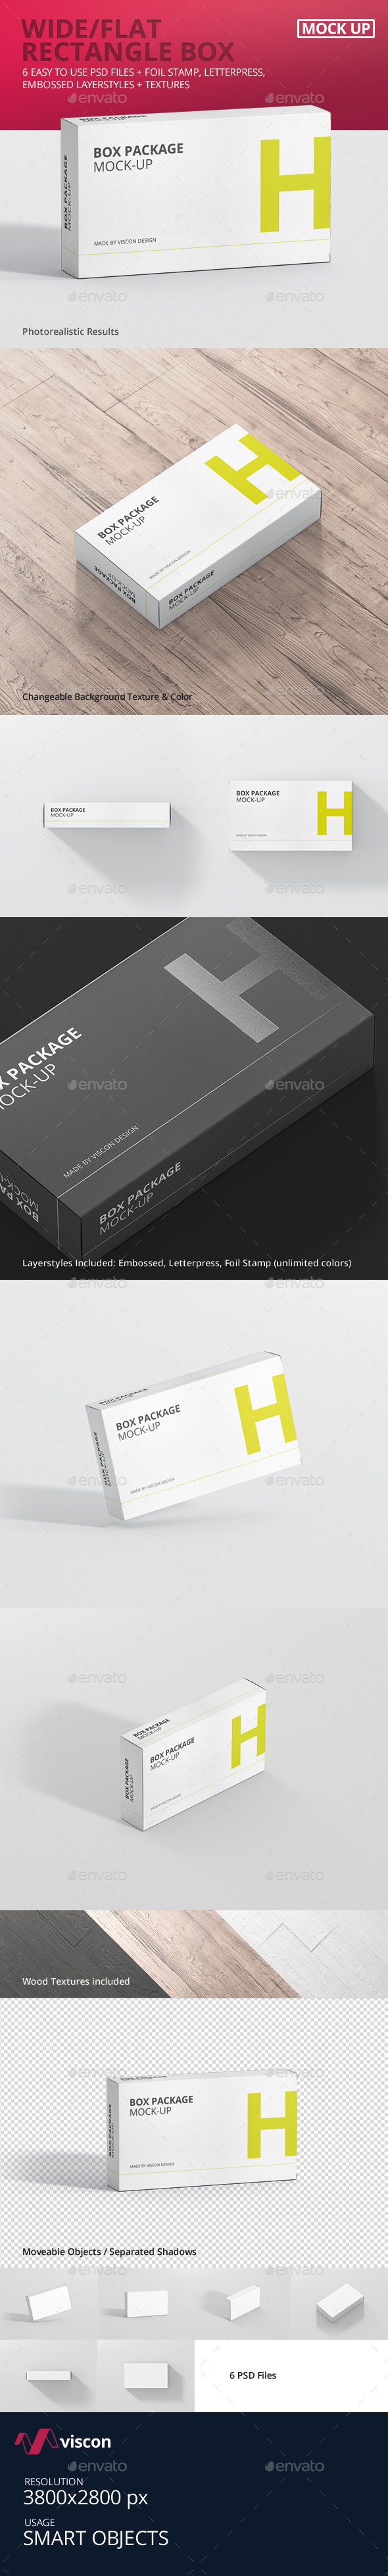 Package Box Mock-Up - Wide / Flat Rectangle